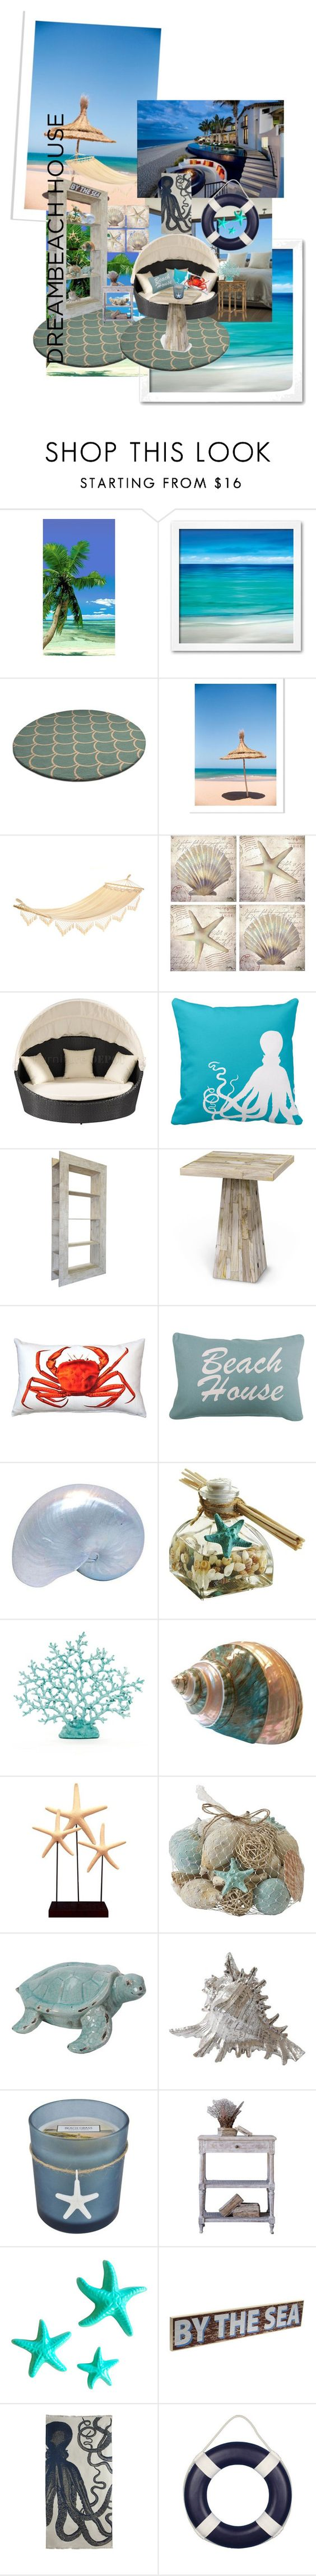 """beach house"" by alaina-dixon on Polyvore featuring interior, interiors, interior design, home, home decor, interior decorating, Dot & Bo, Thirstystone, Pillow Decor and Park B. Smith"